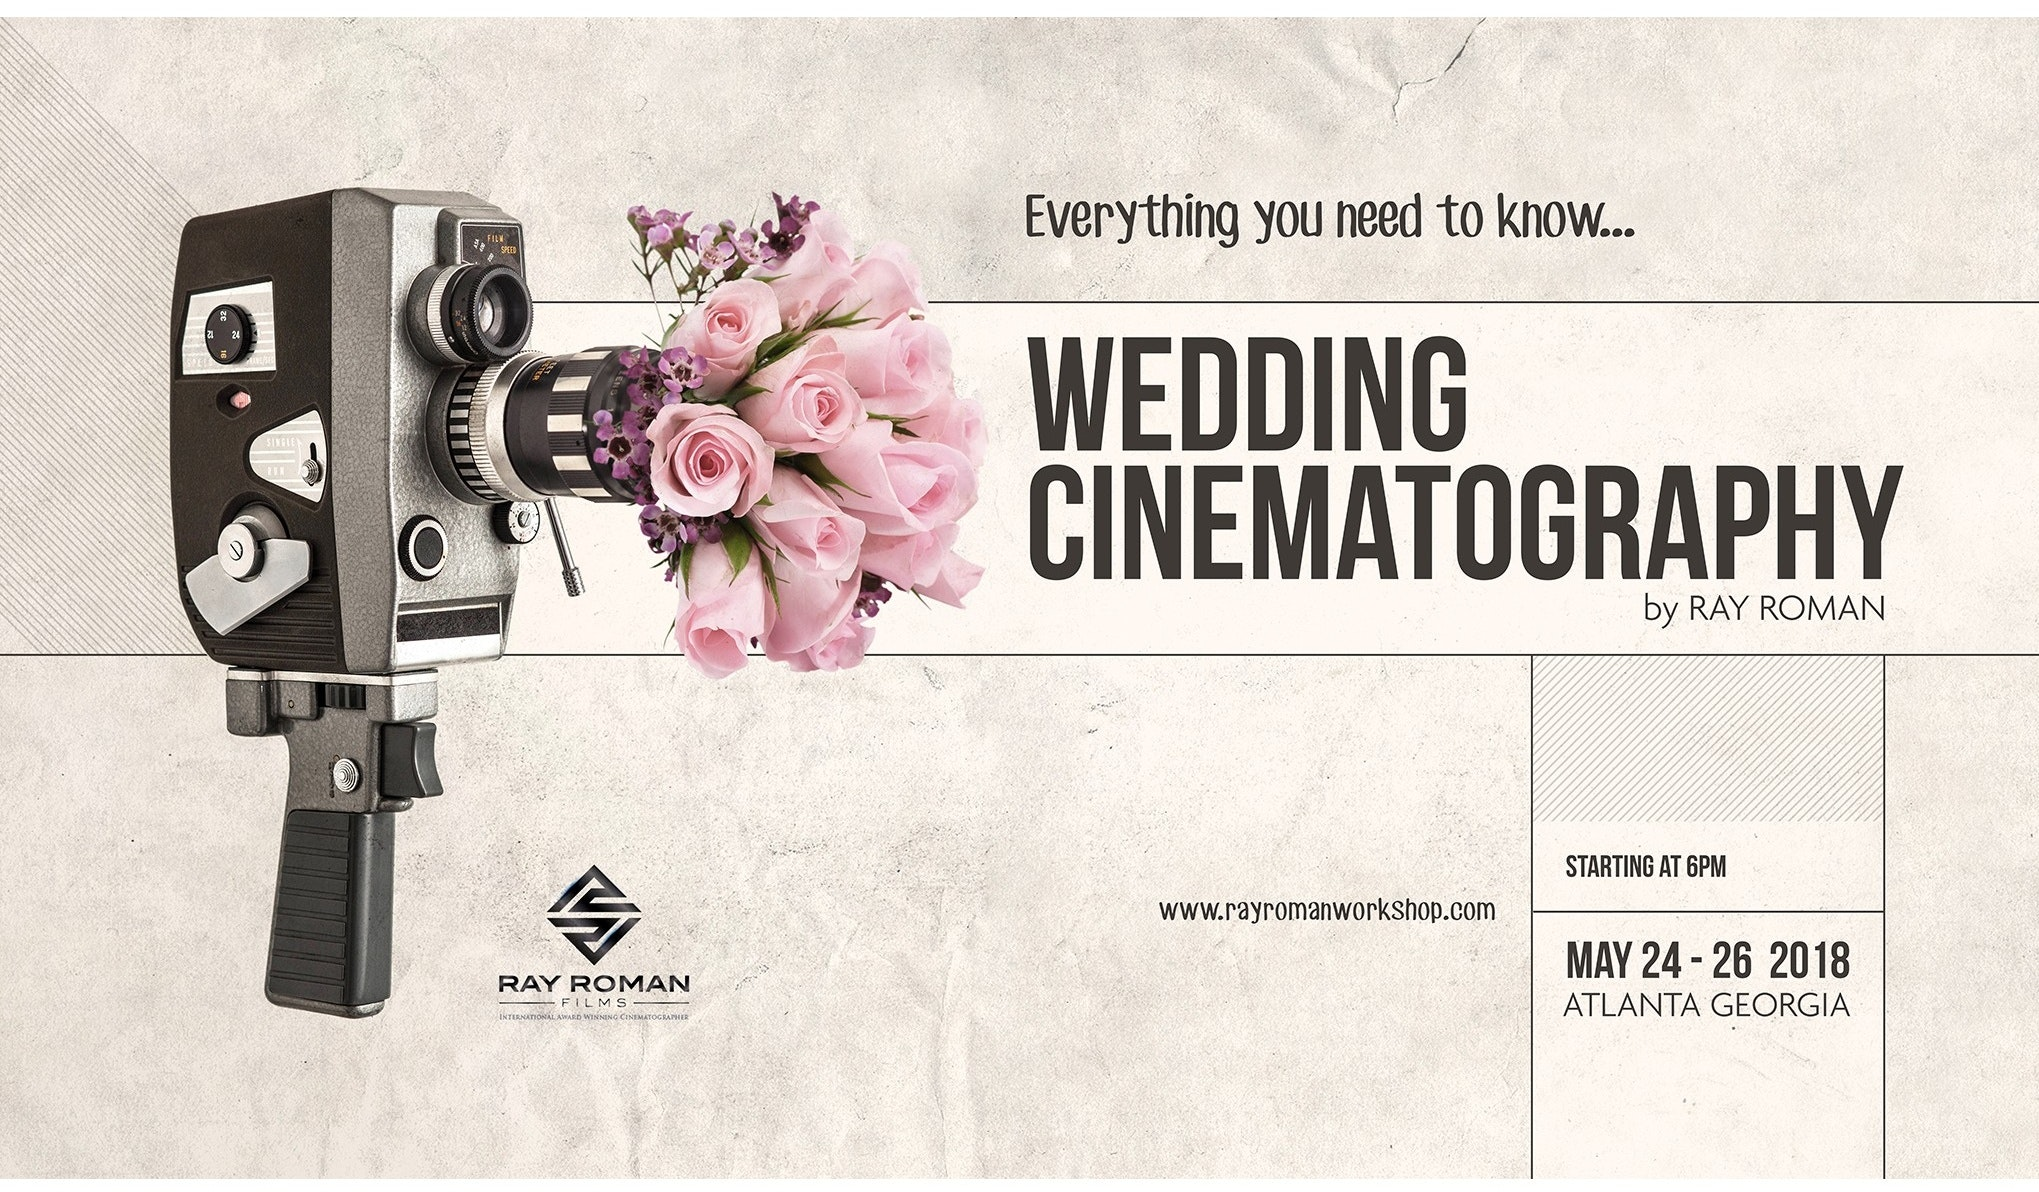 Poster for a workshop on wedding cinematography